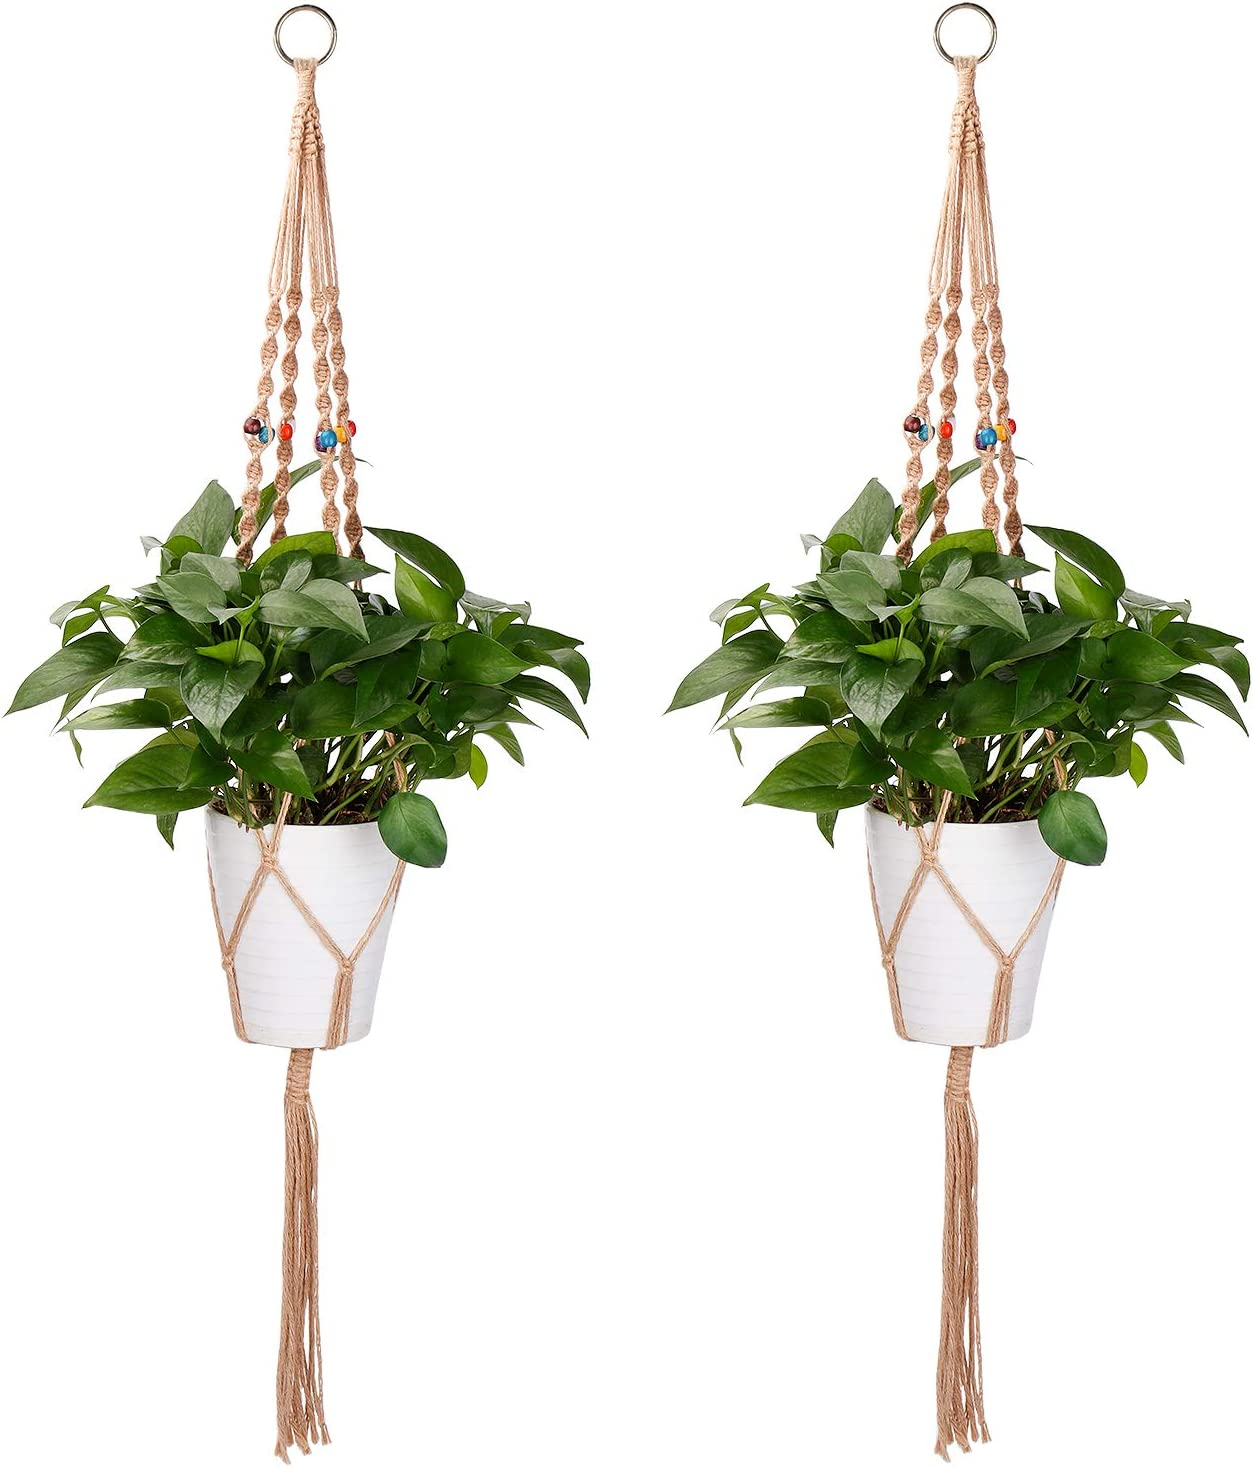 PEMOTech Macrame Plant Hangers, 2 Pack Jute Plant Hangers Indoor Hanging Plant Holders with Colored Beads for Indoor, Outdoor, Balcony, Garden, Ceiling 4 Legs 43 Inch